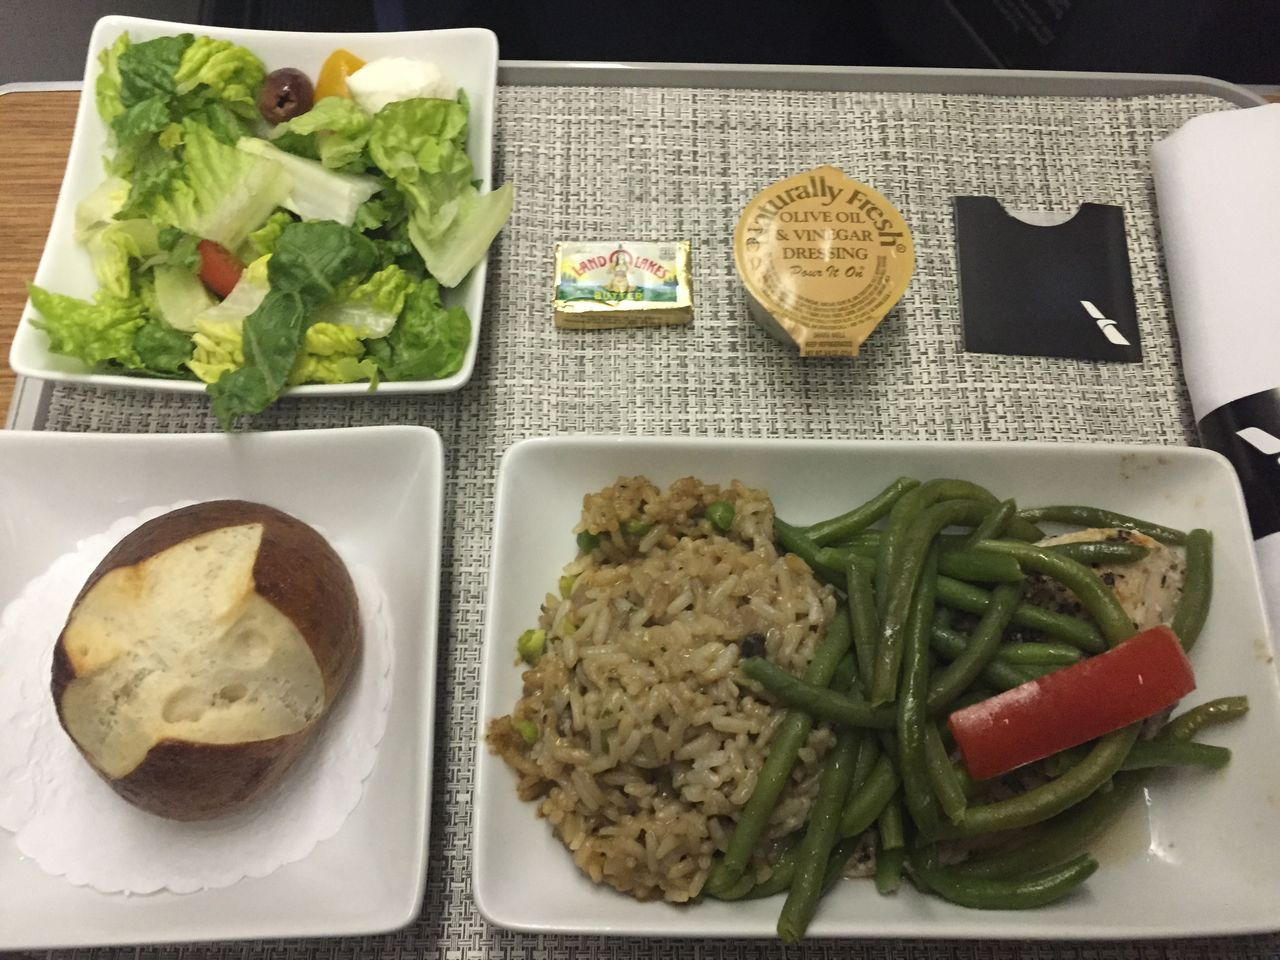 Review Of American Airlines Flight From Miami To Chicago